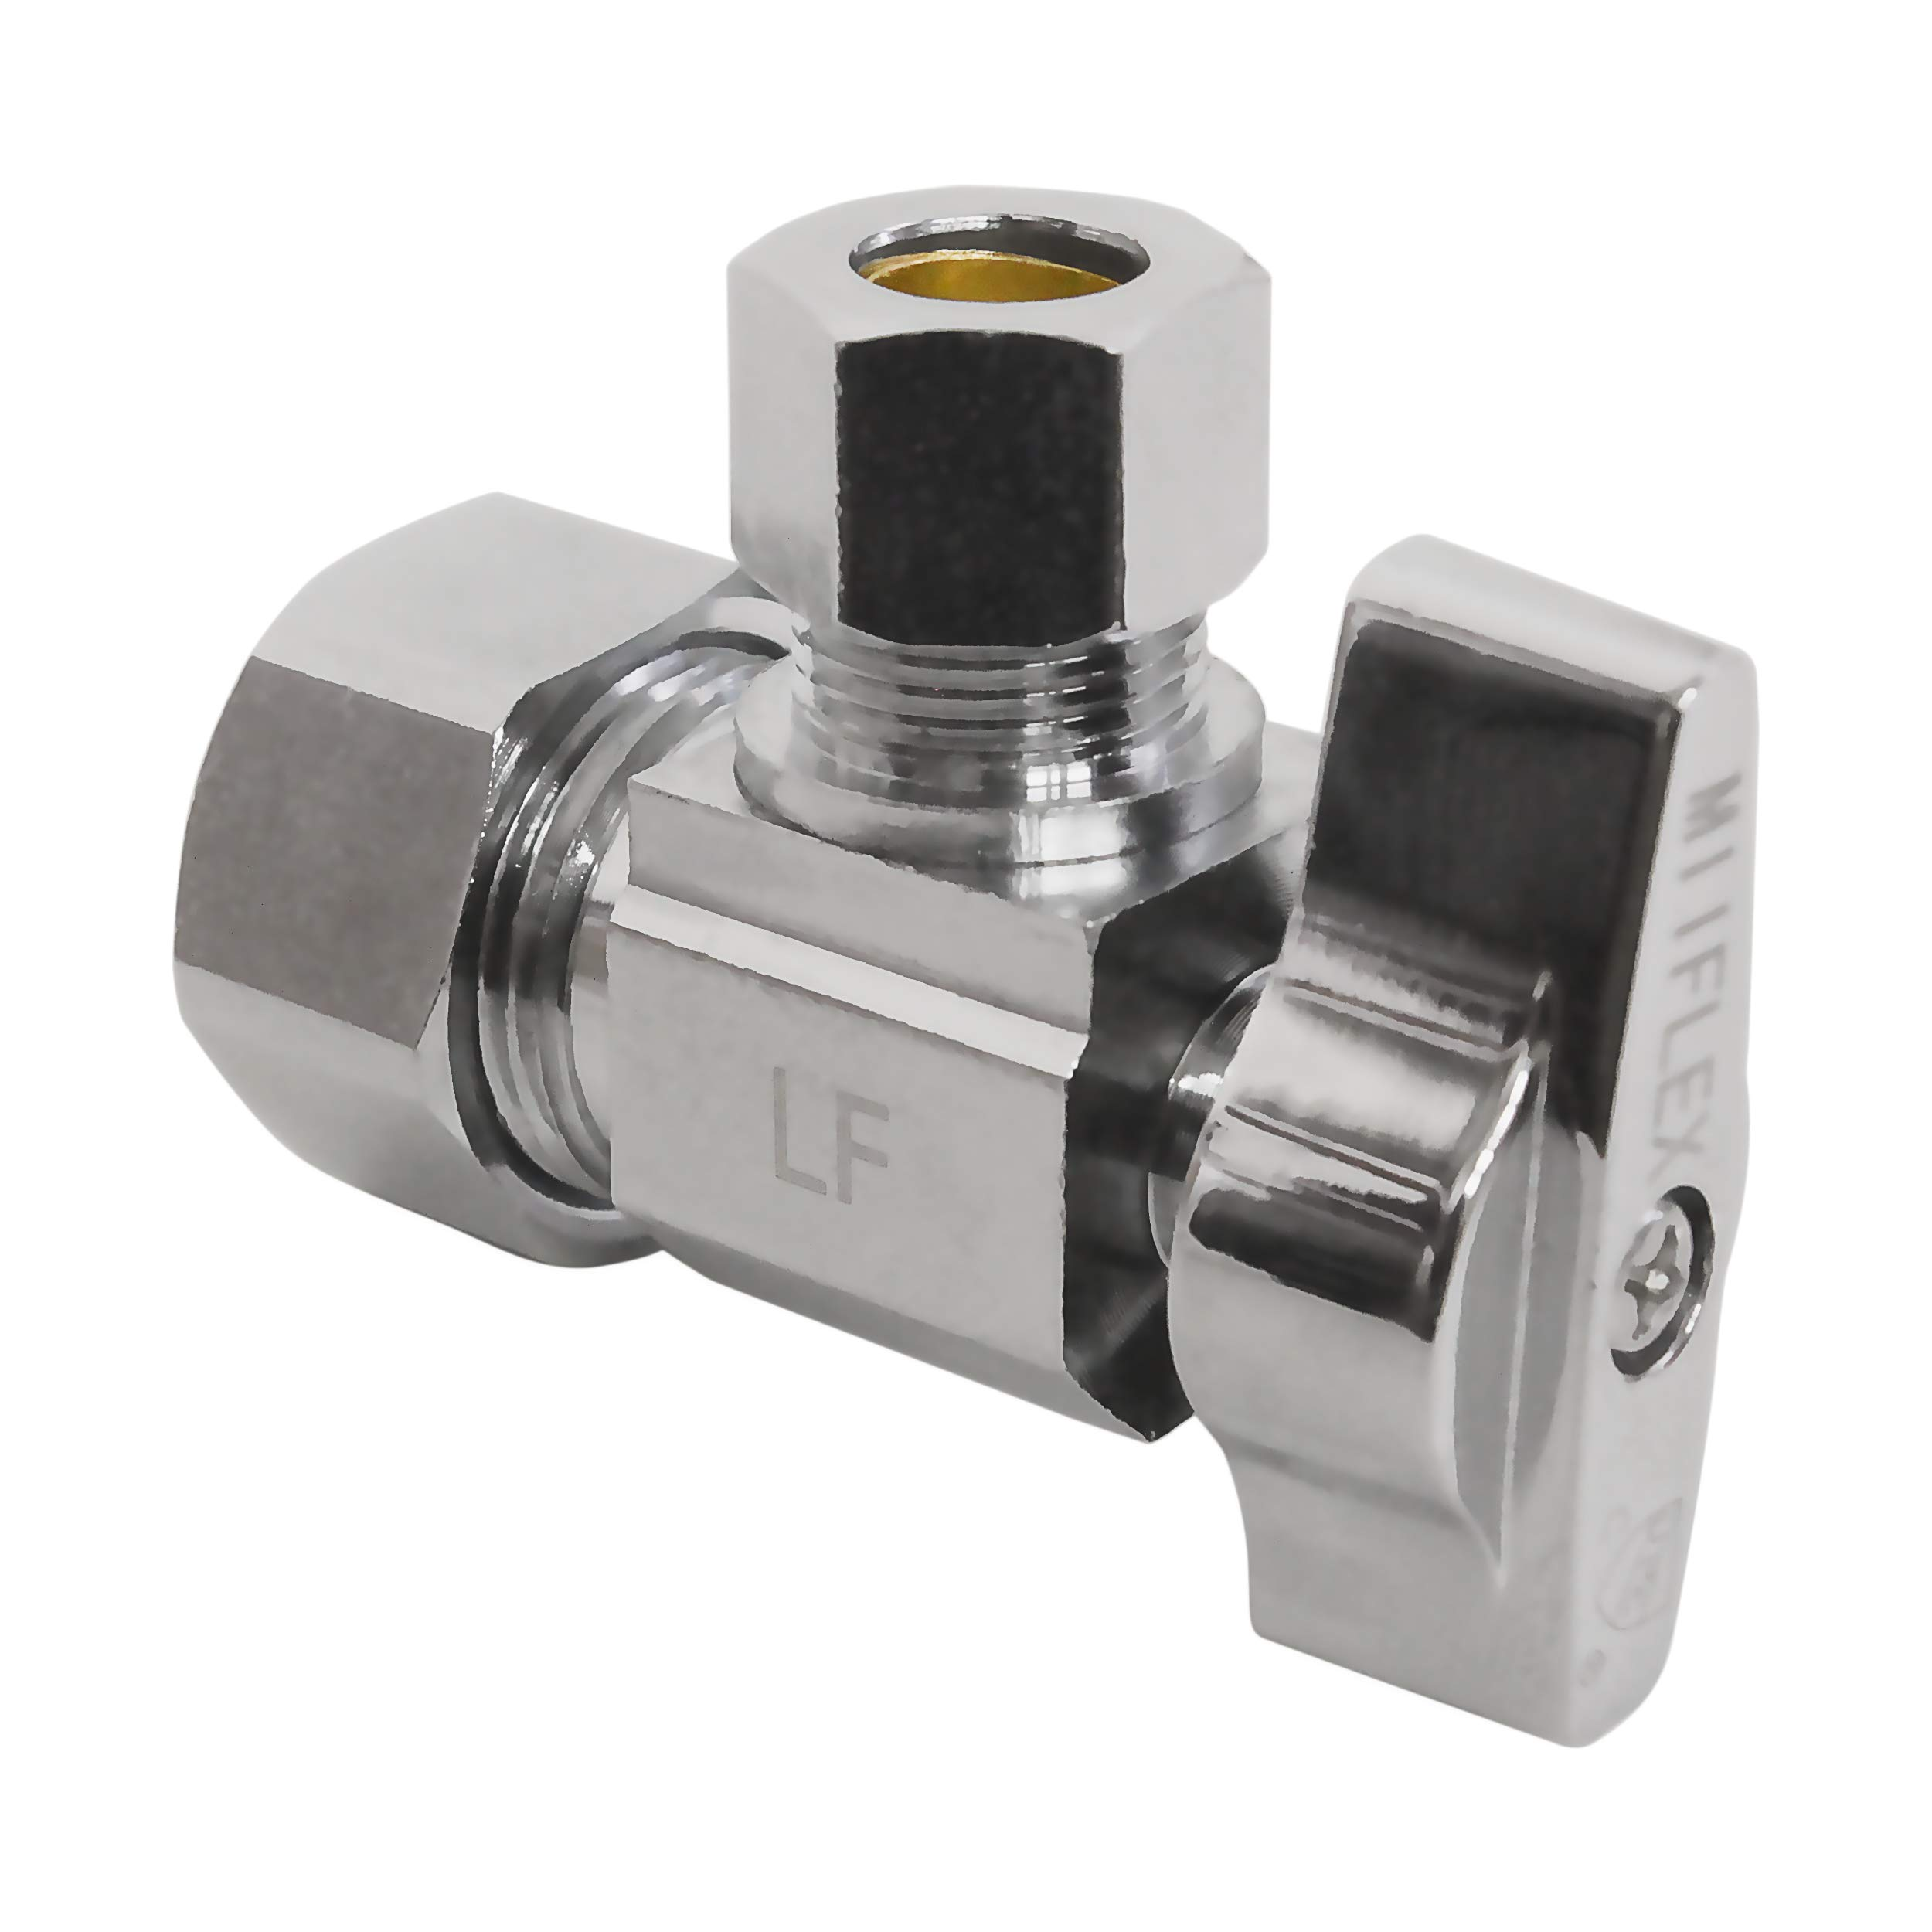 Heavy Duty Squared Body 1/2 in. NOM Comp Inlet x 3/8 in. OD Compression Outlet Chrome Plated Brass 1/4 Turn Angle Stop Valve (5 Pack) by Miiflex (Image #2)